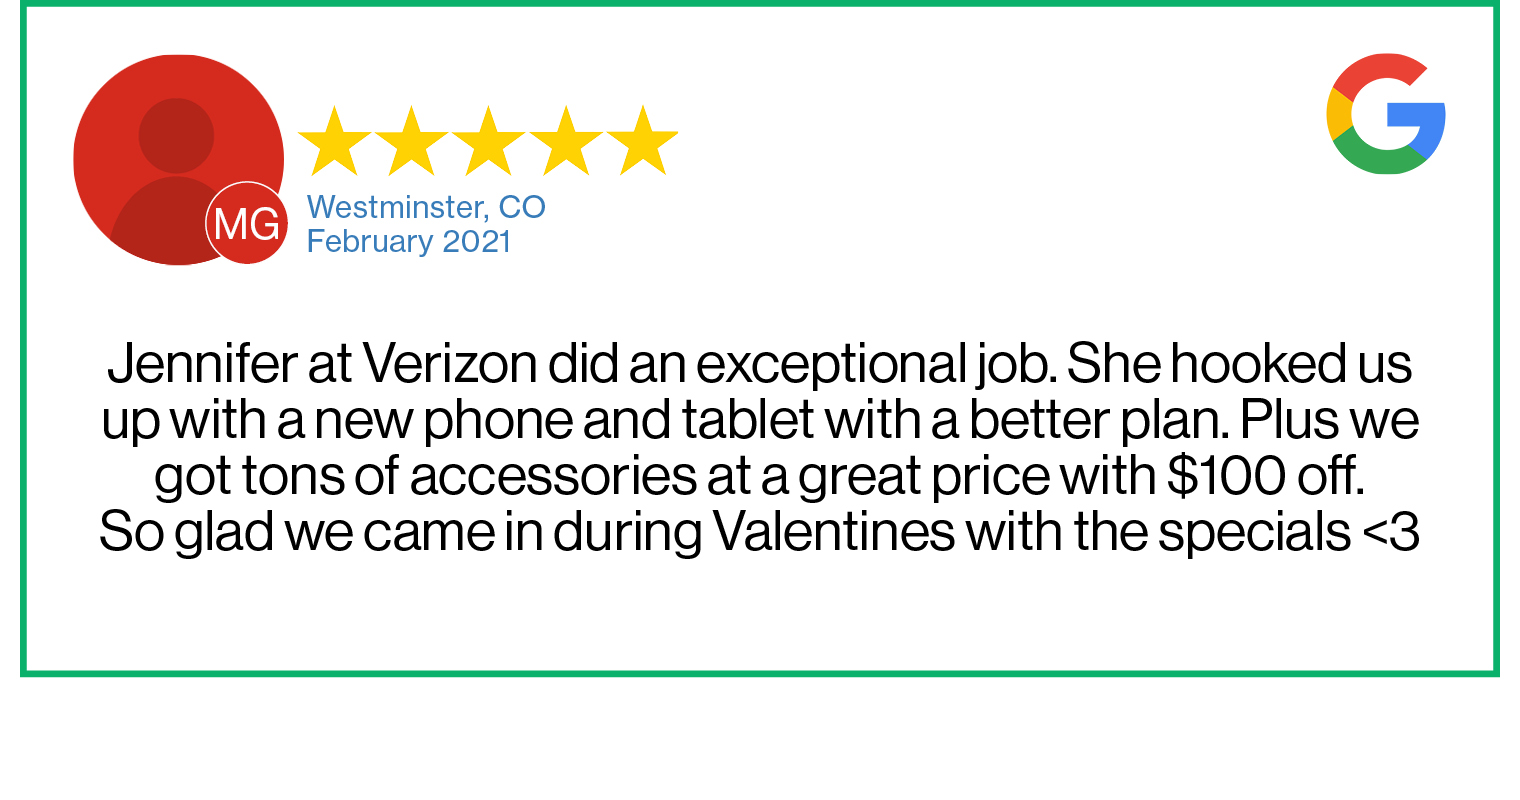 Check out this recent customer review about the Verizon Cellular Plus store in Westminster, Colorado